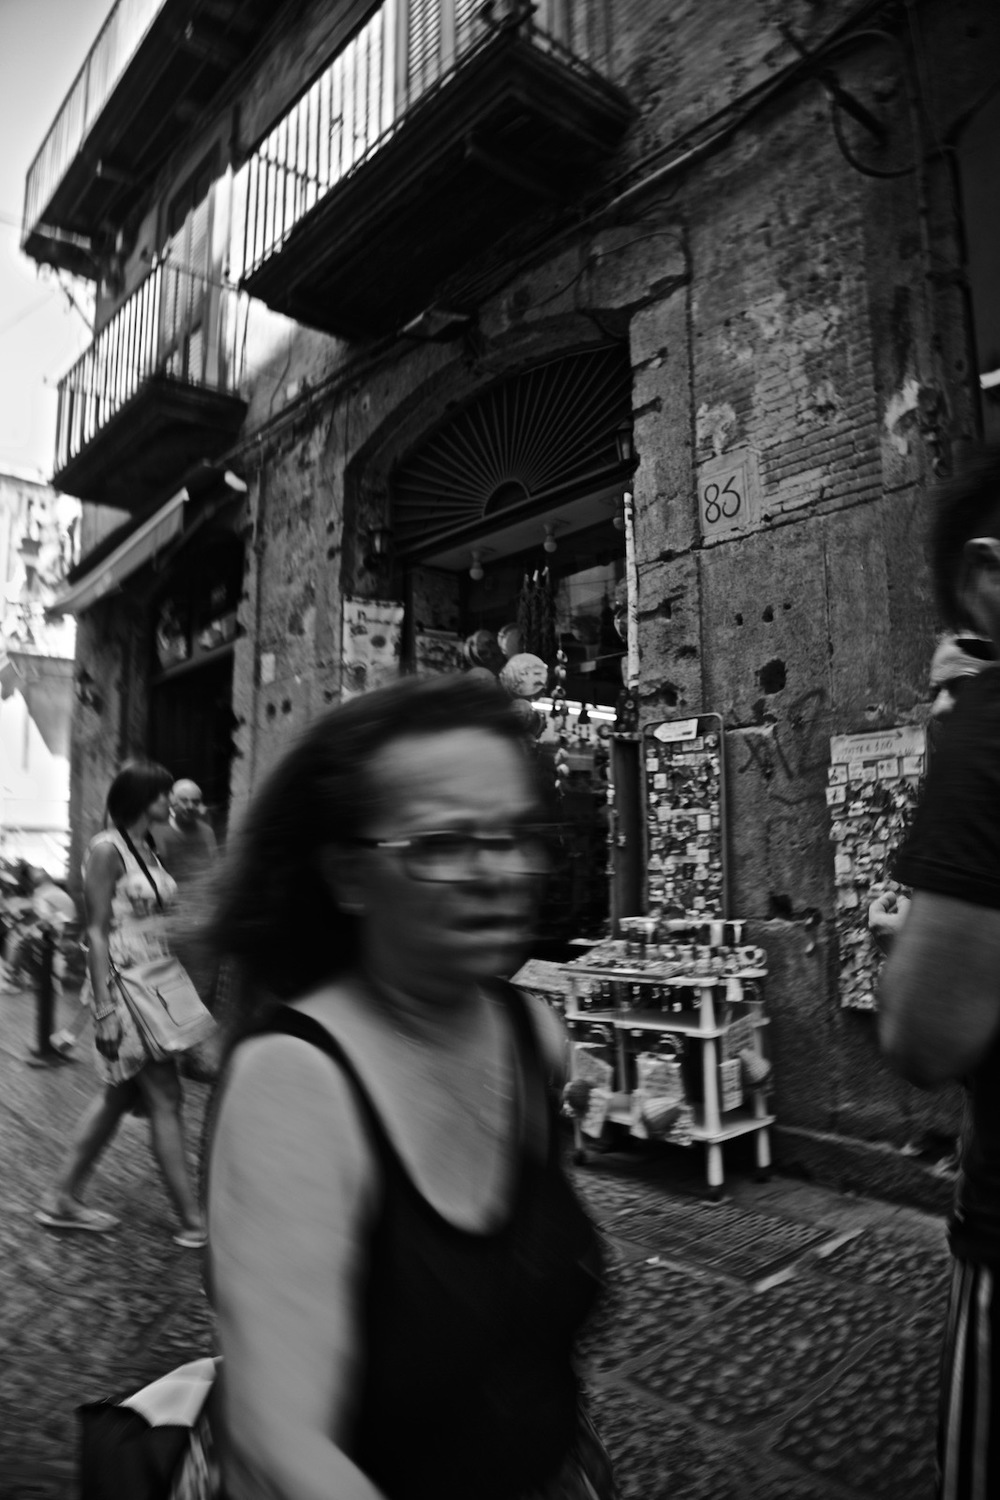 faces-of-napoli-denis-bosnic-photography-naples-bw-spaccanapoli-summer-6.jpg